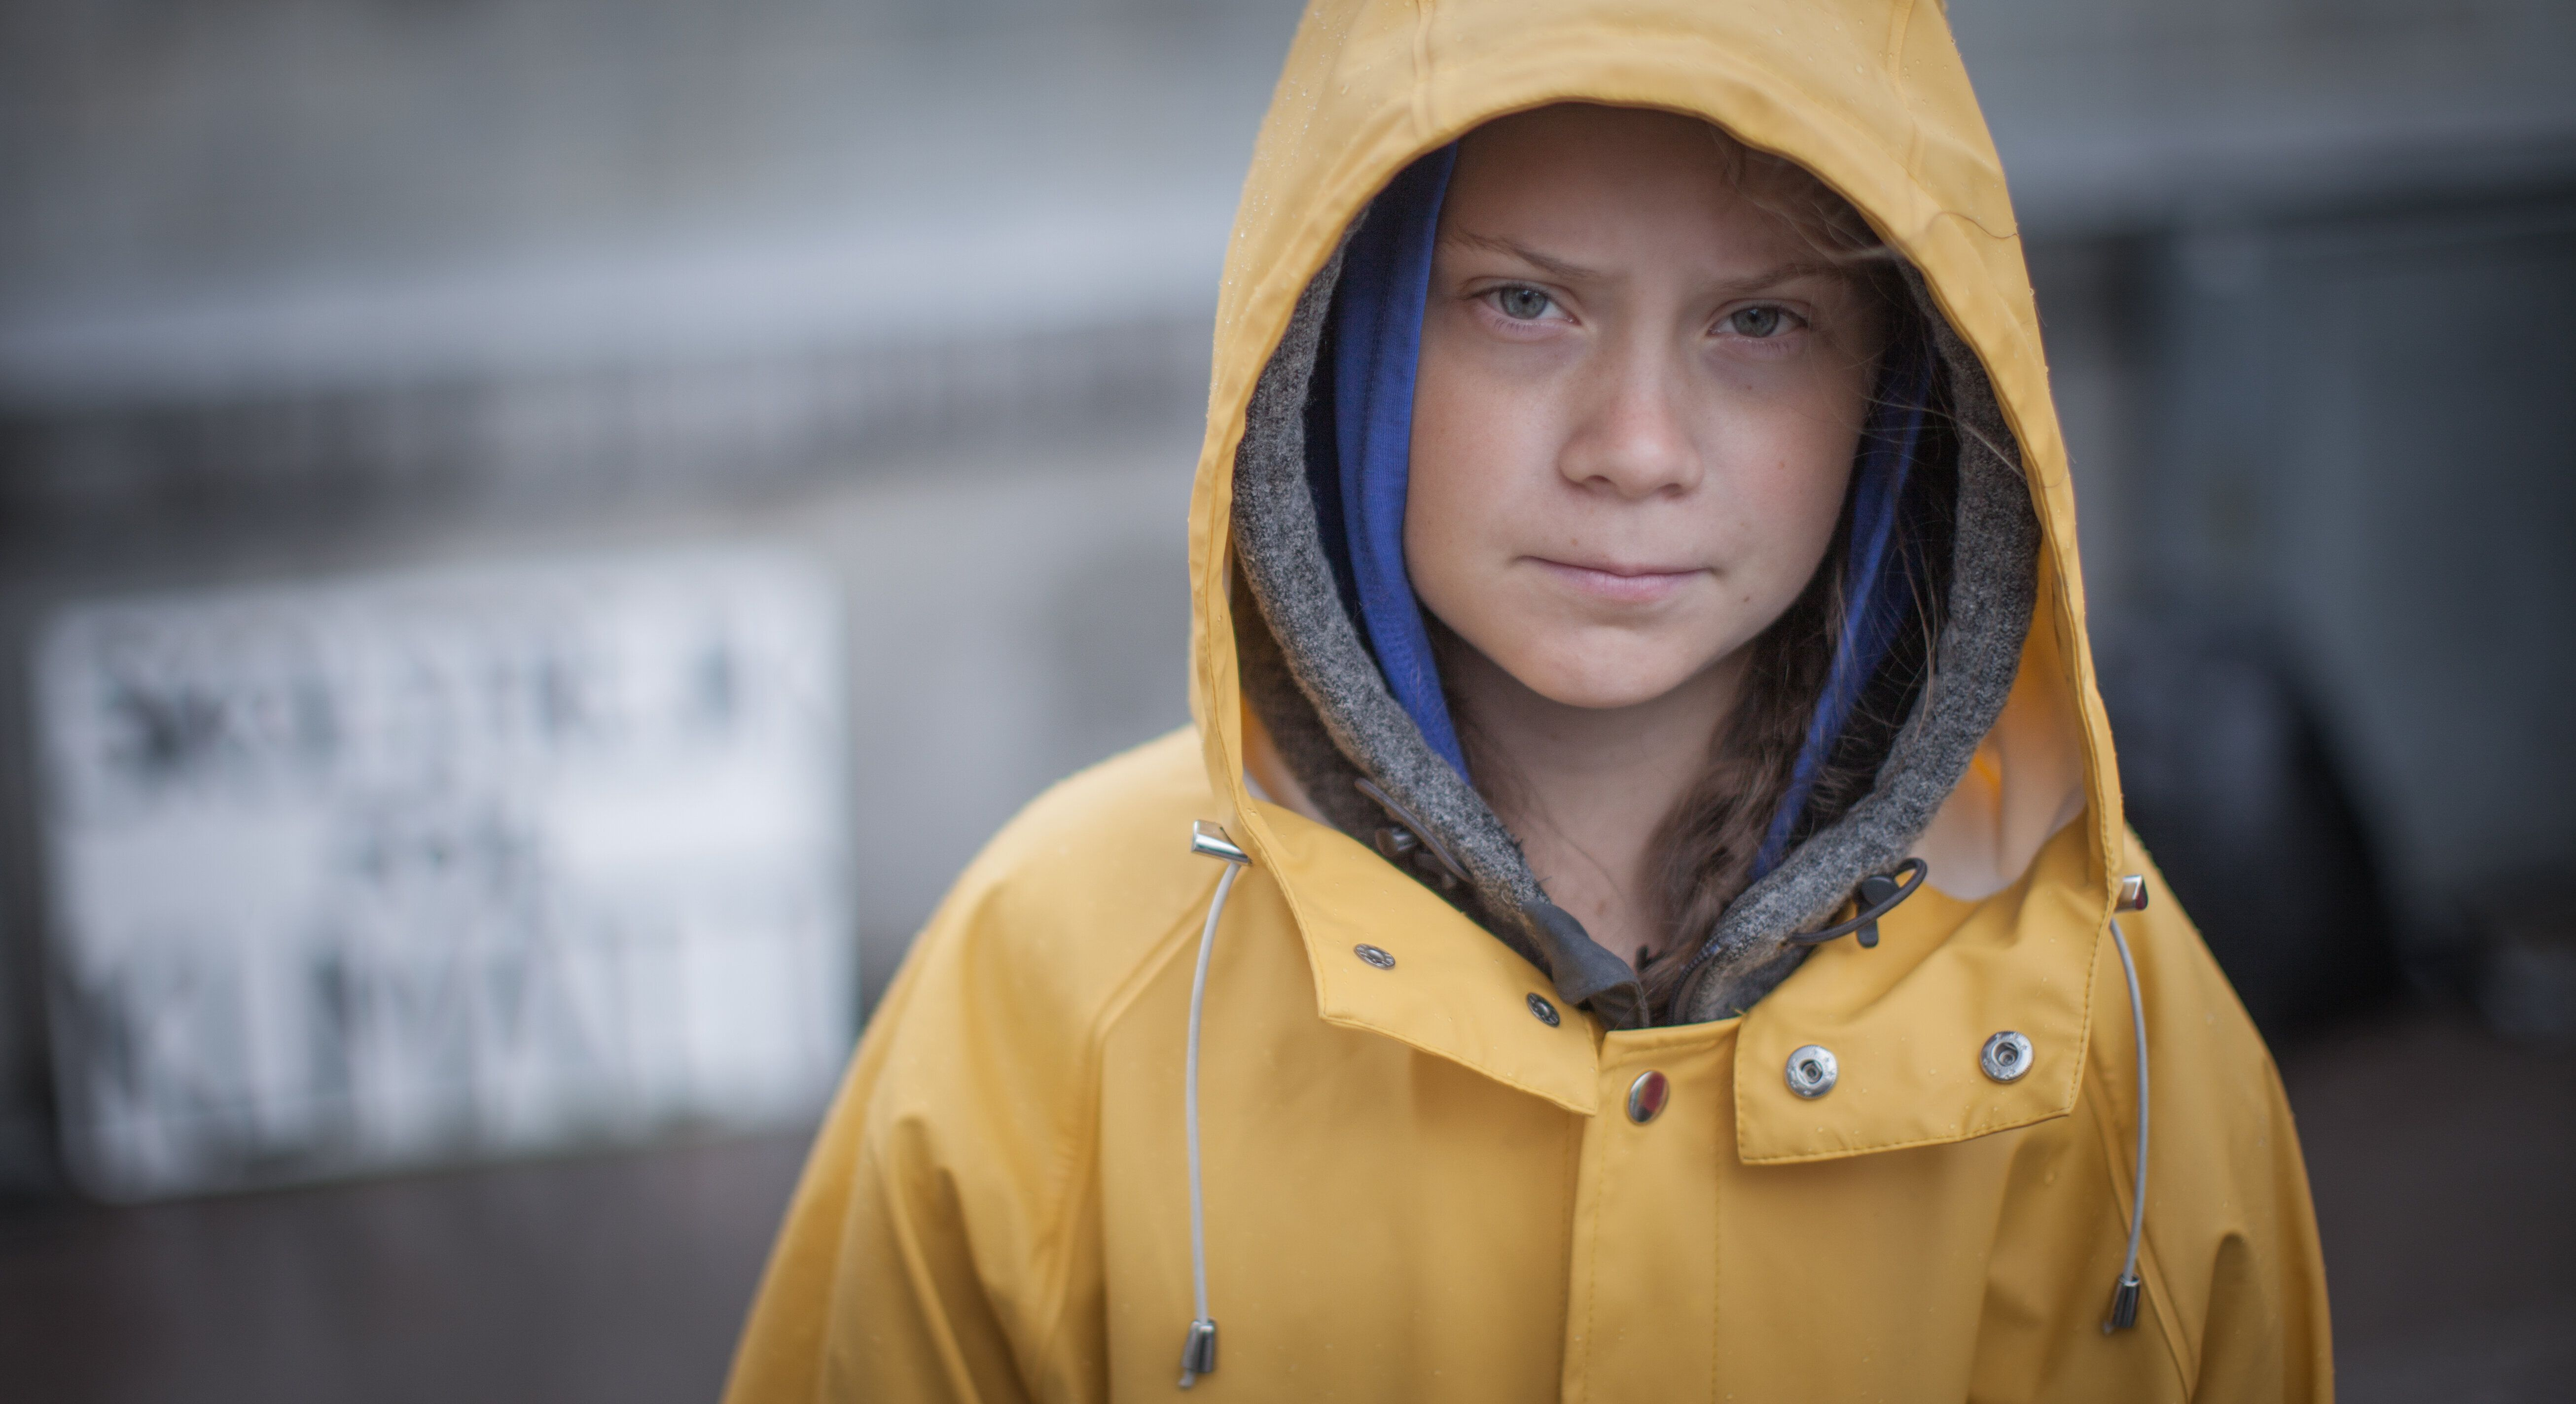 Swedish teen activist Greta Thunberg has been named one of four winners of the 2019 Right Livelihood Award for her work to cu